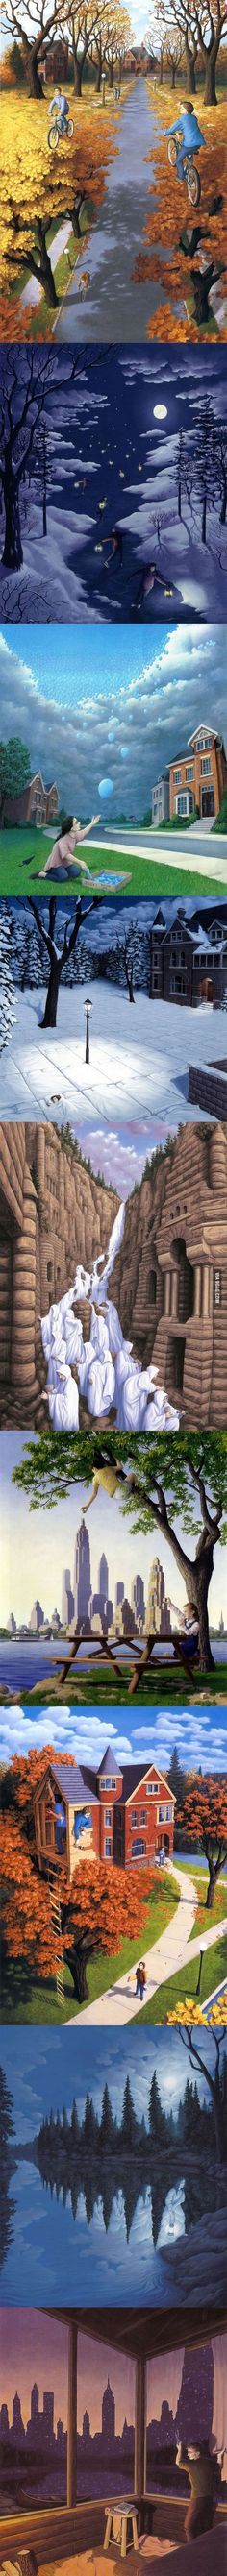 Mind-bending paintings by Rob Gonsalves